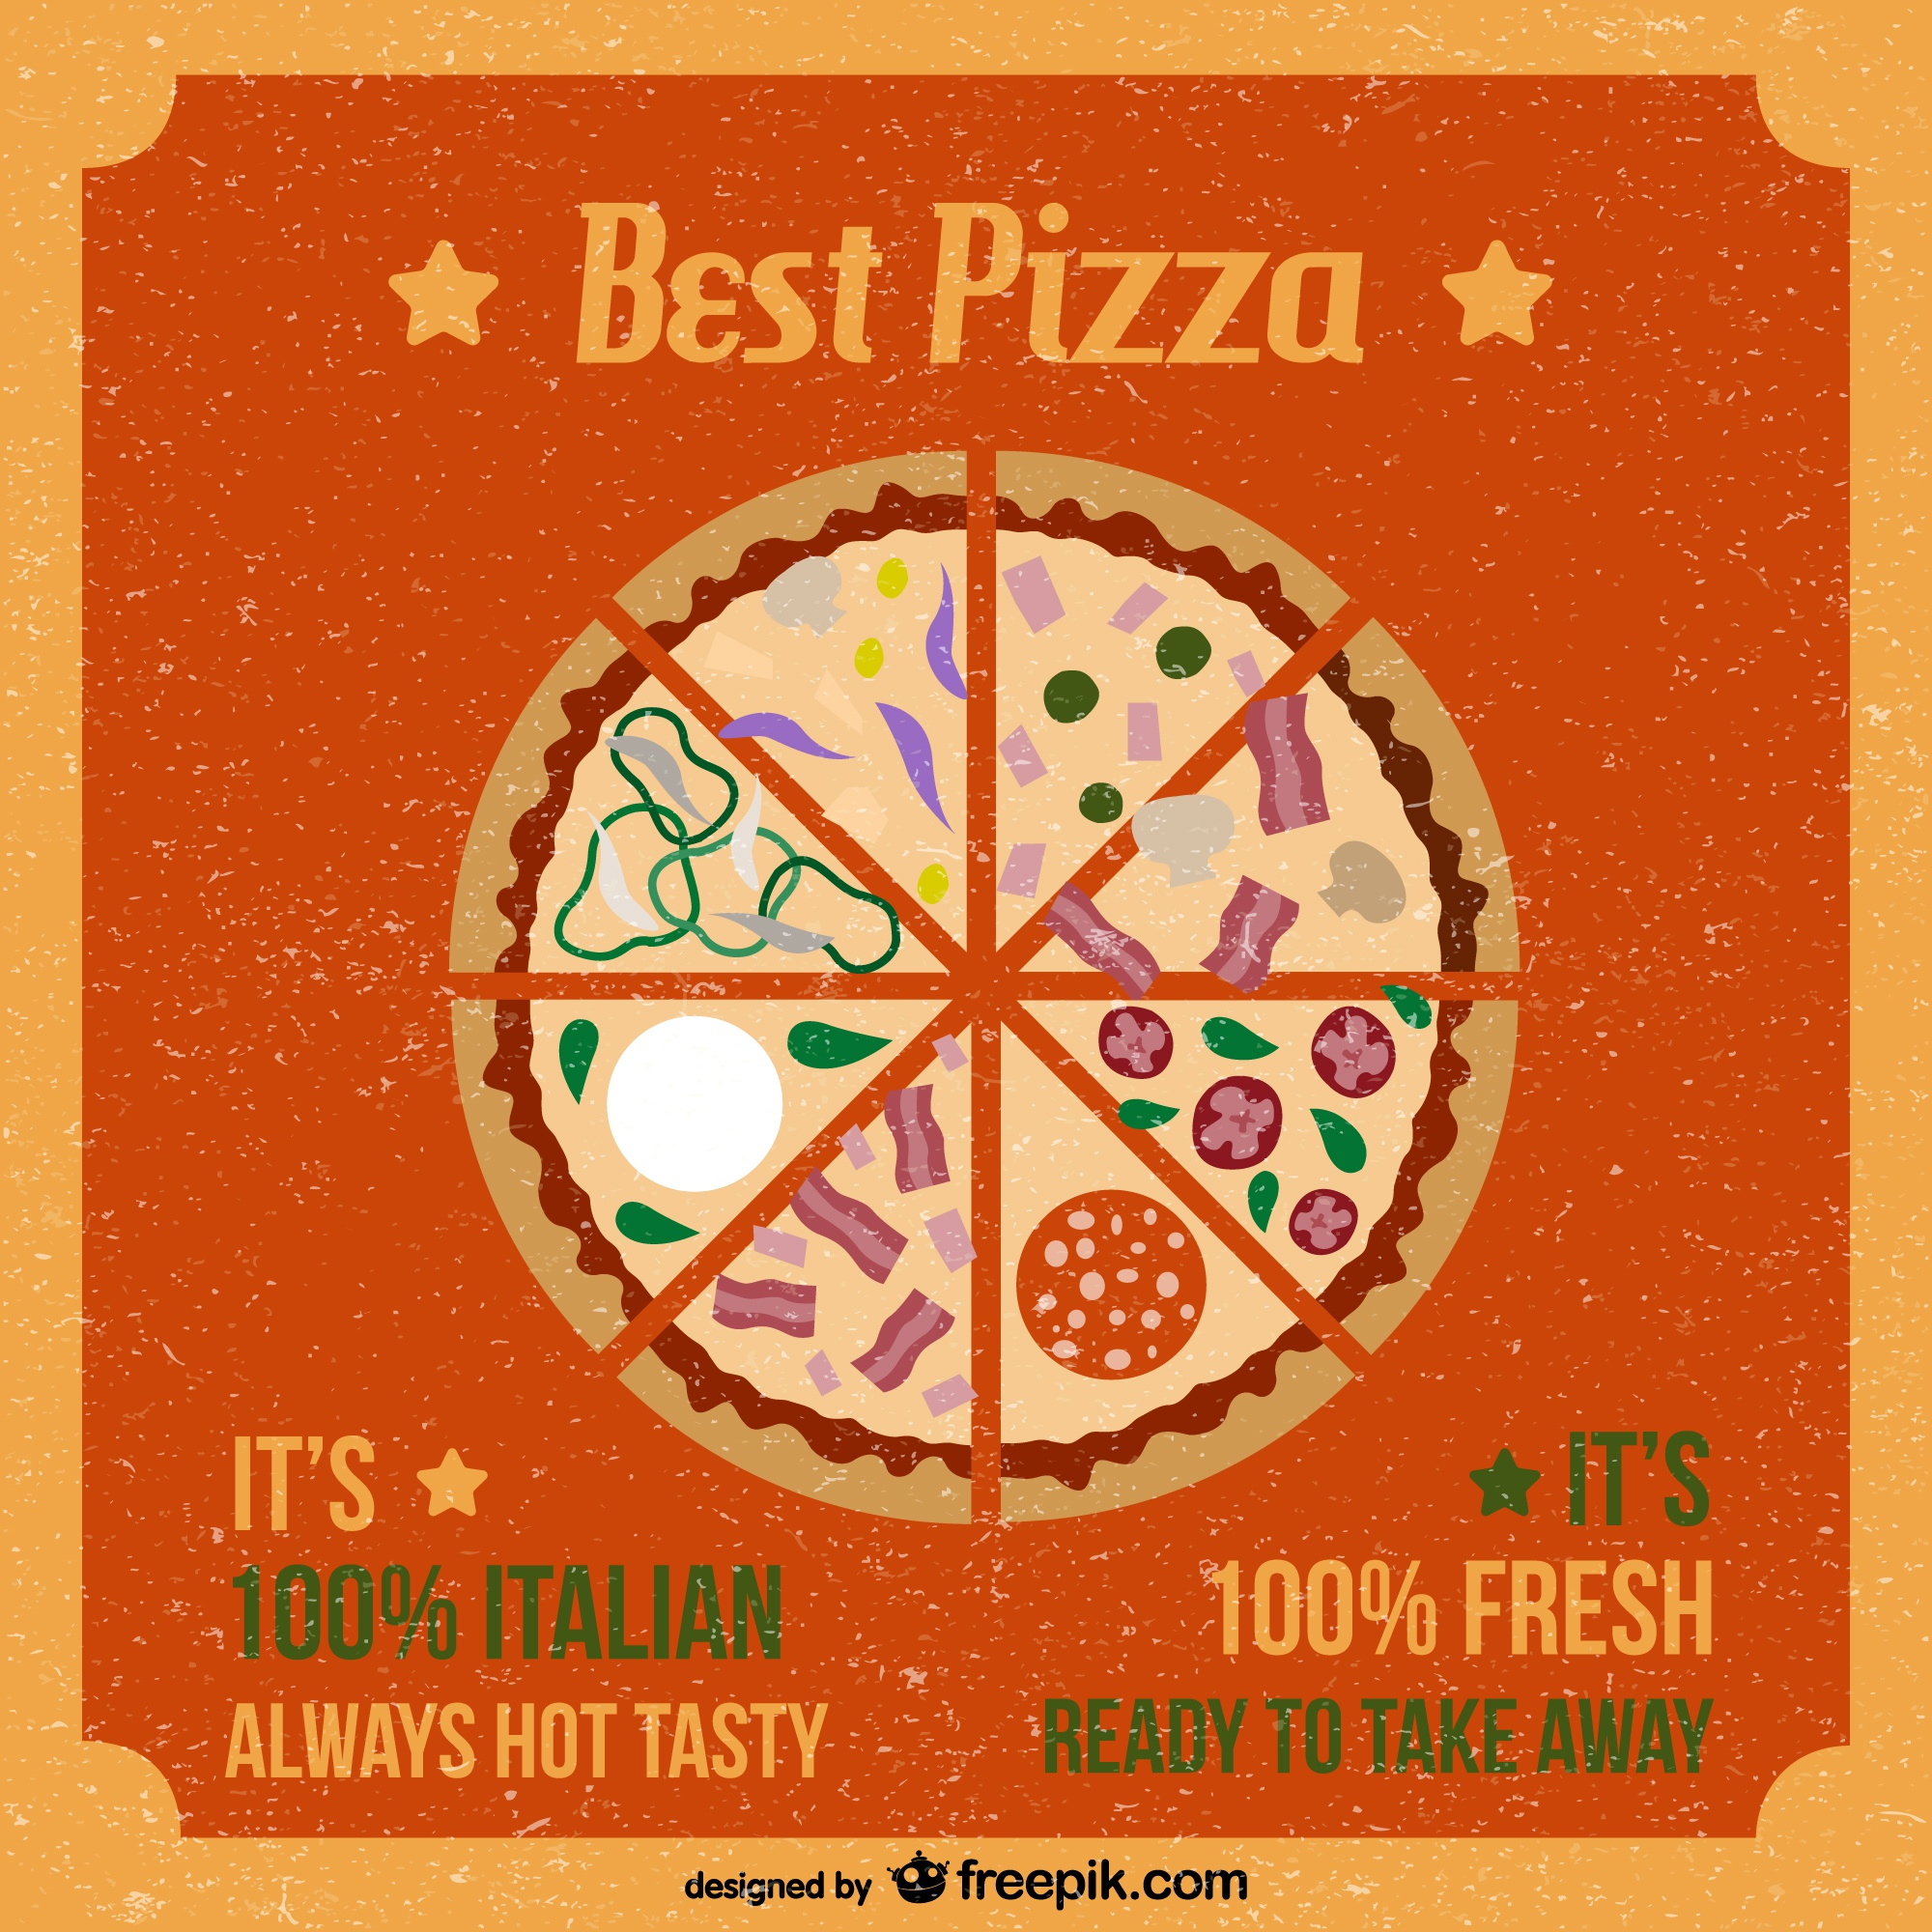 Retro style pizza vector